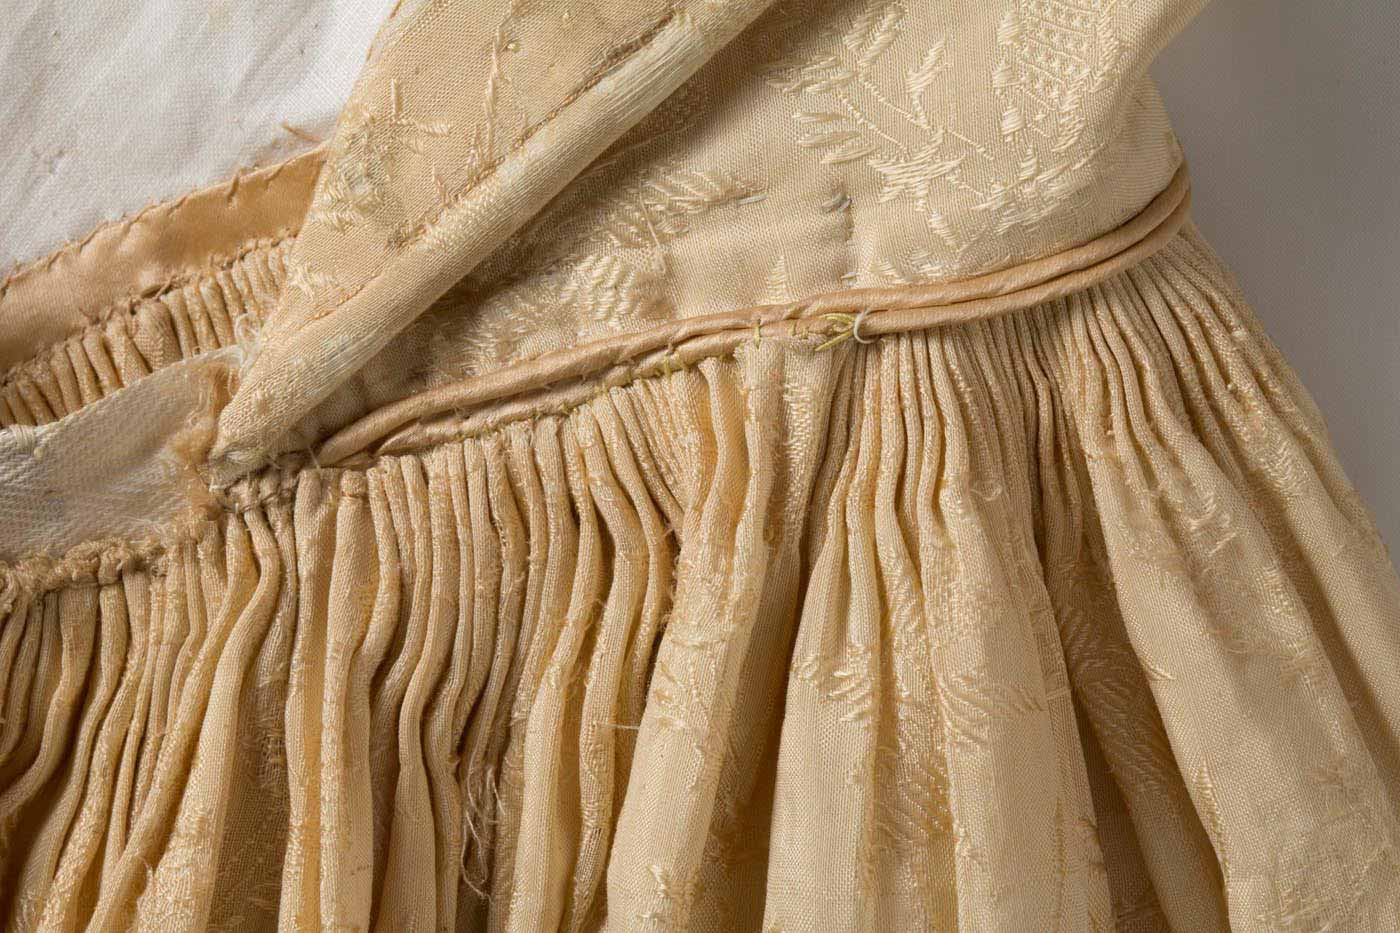 Back of dress with bodice undone, revealing the central boning and interior fine pleating at the waistline. - click to view larger image